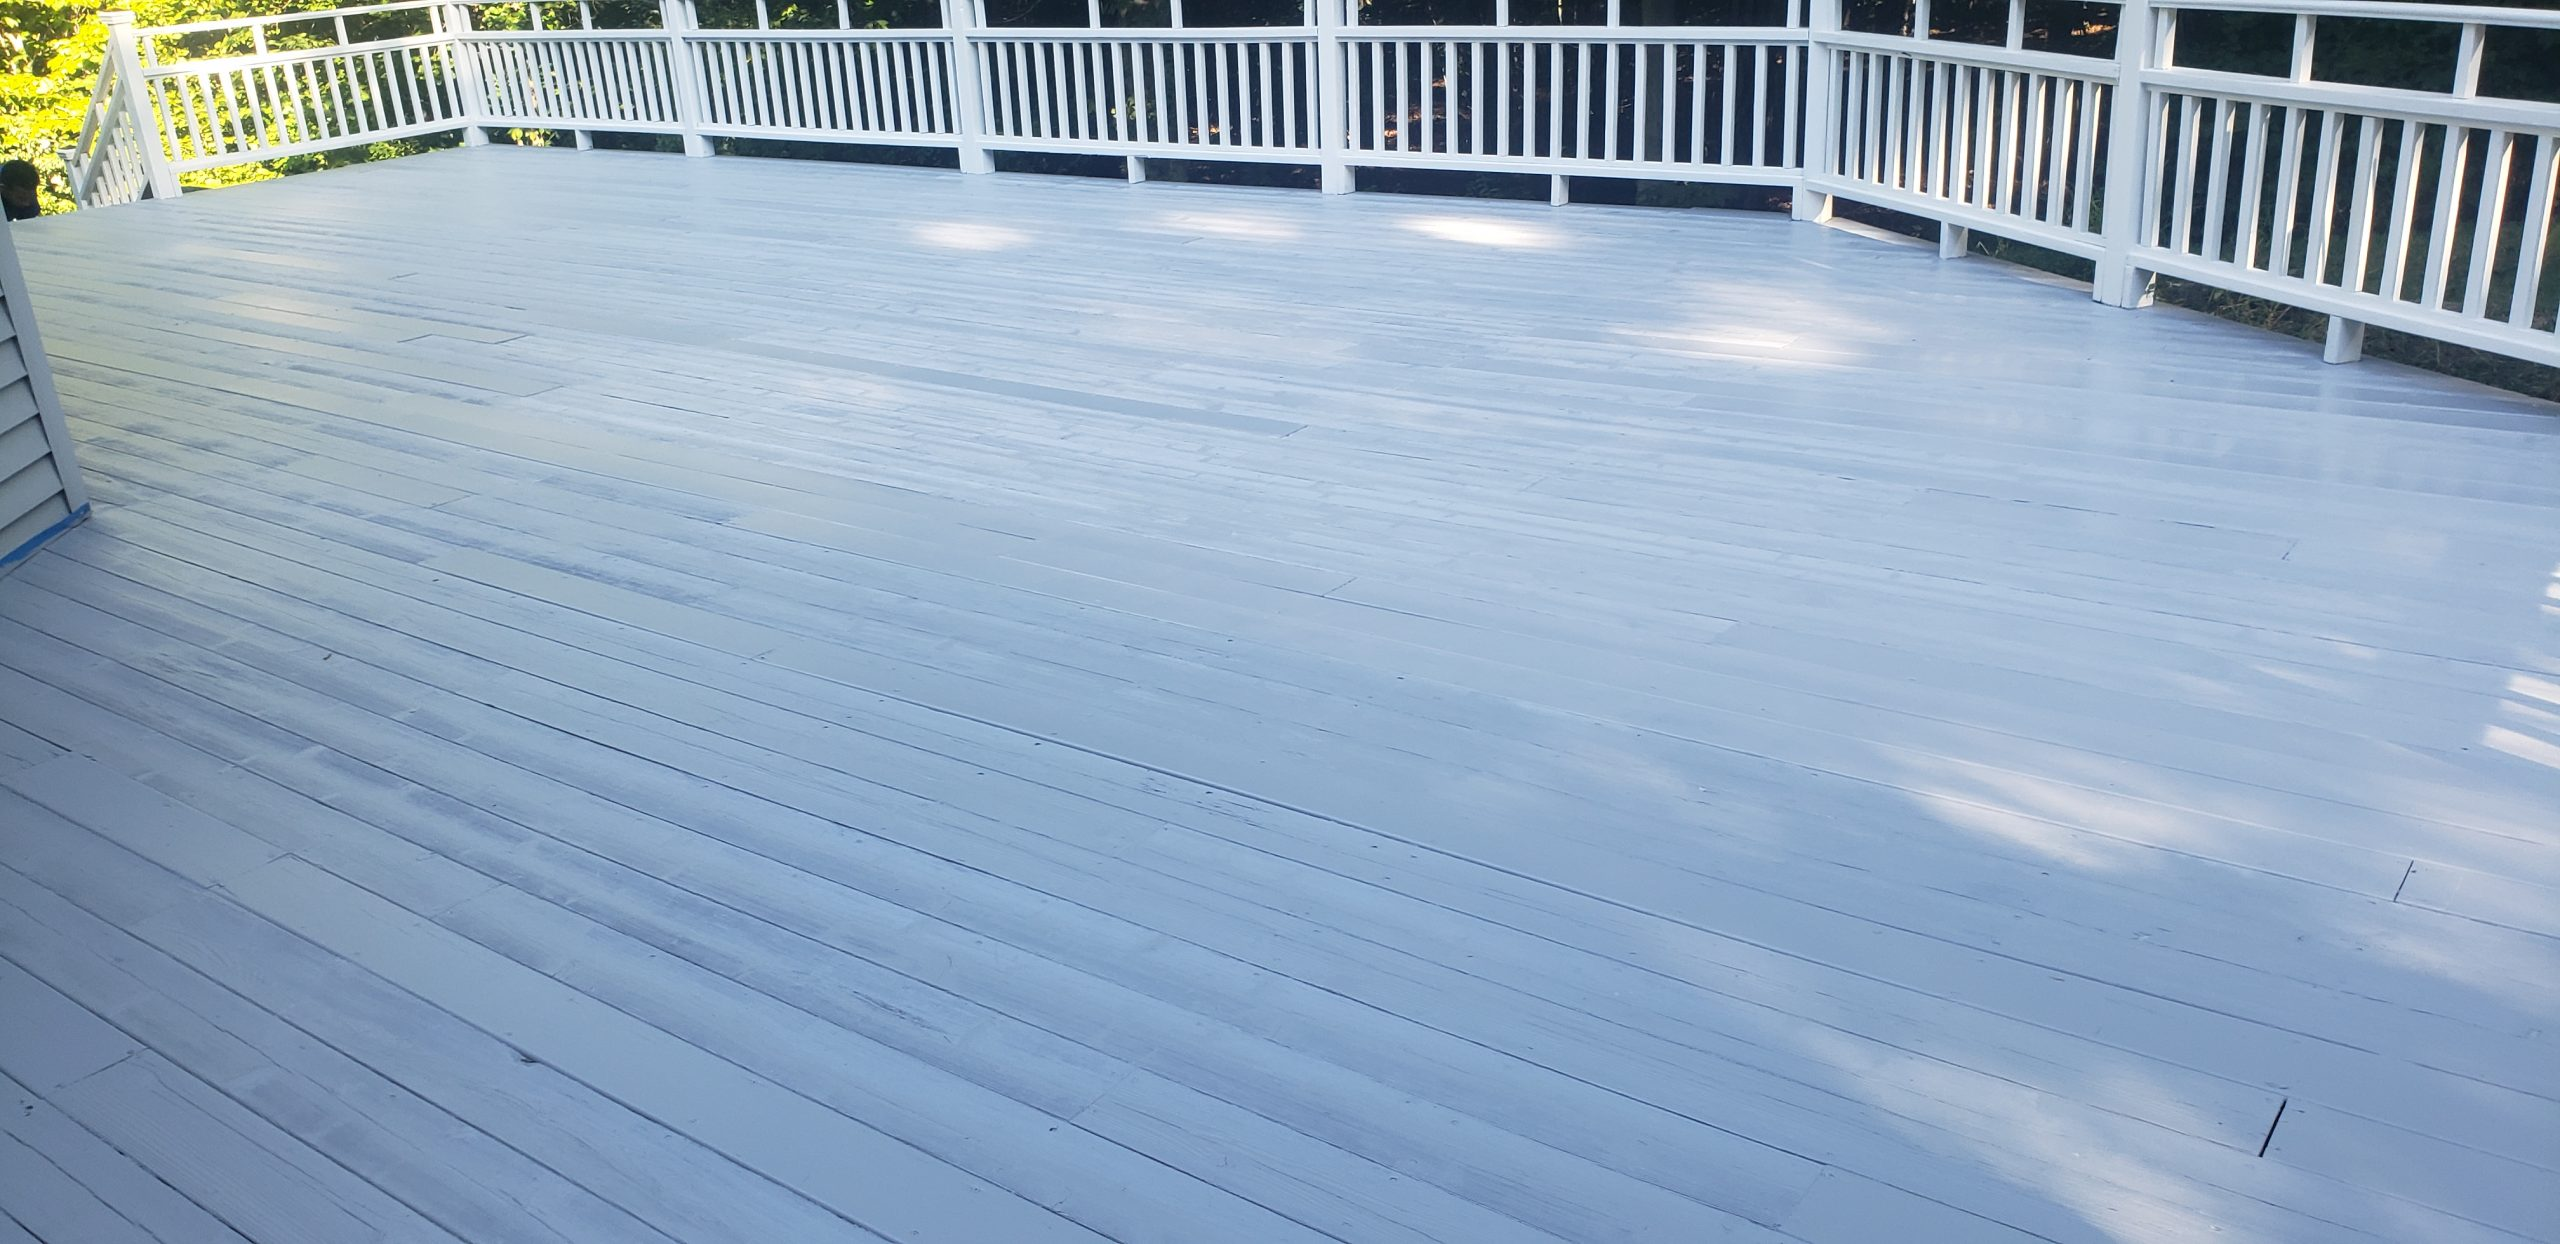 Shelton Connecticut pressure washing and Deck Restoration